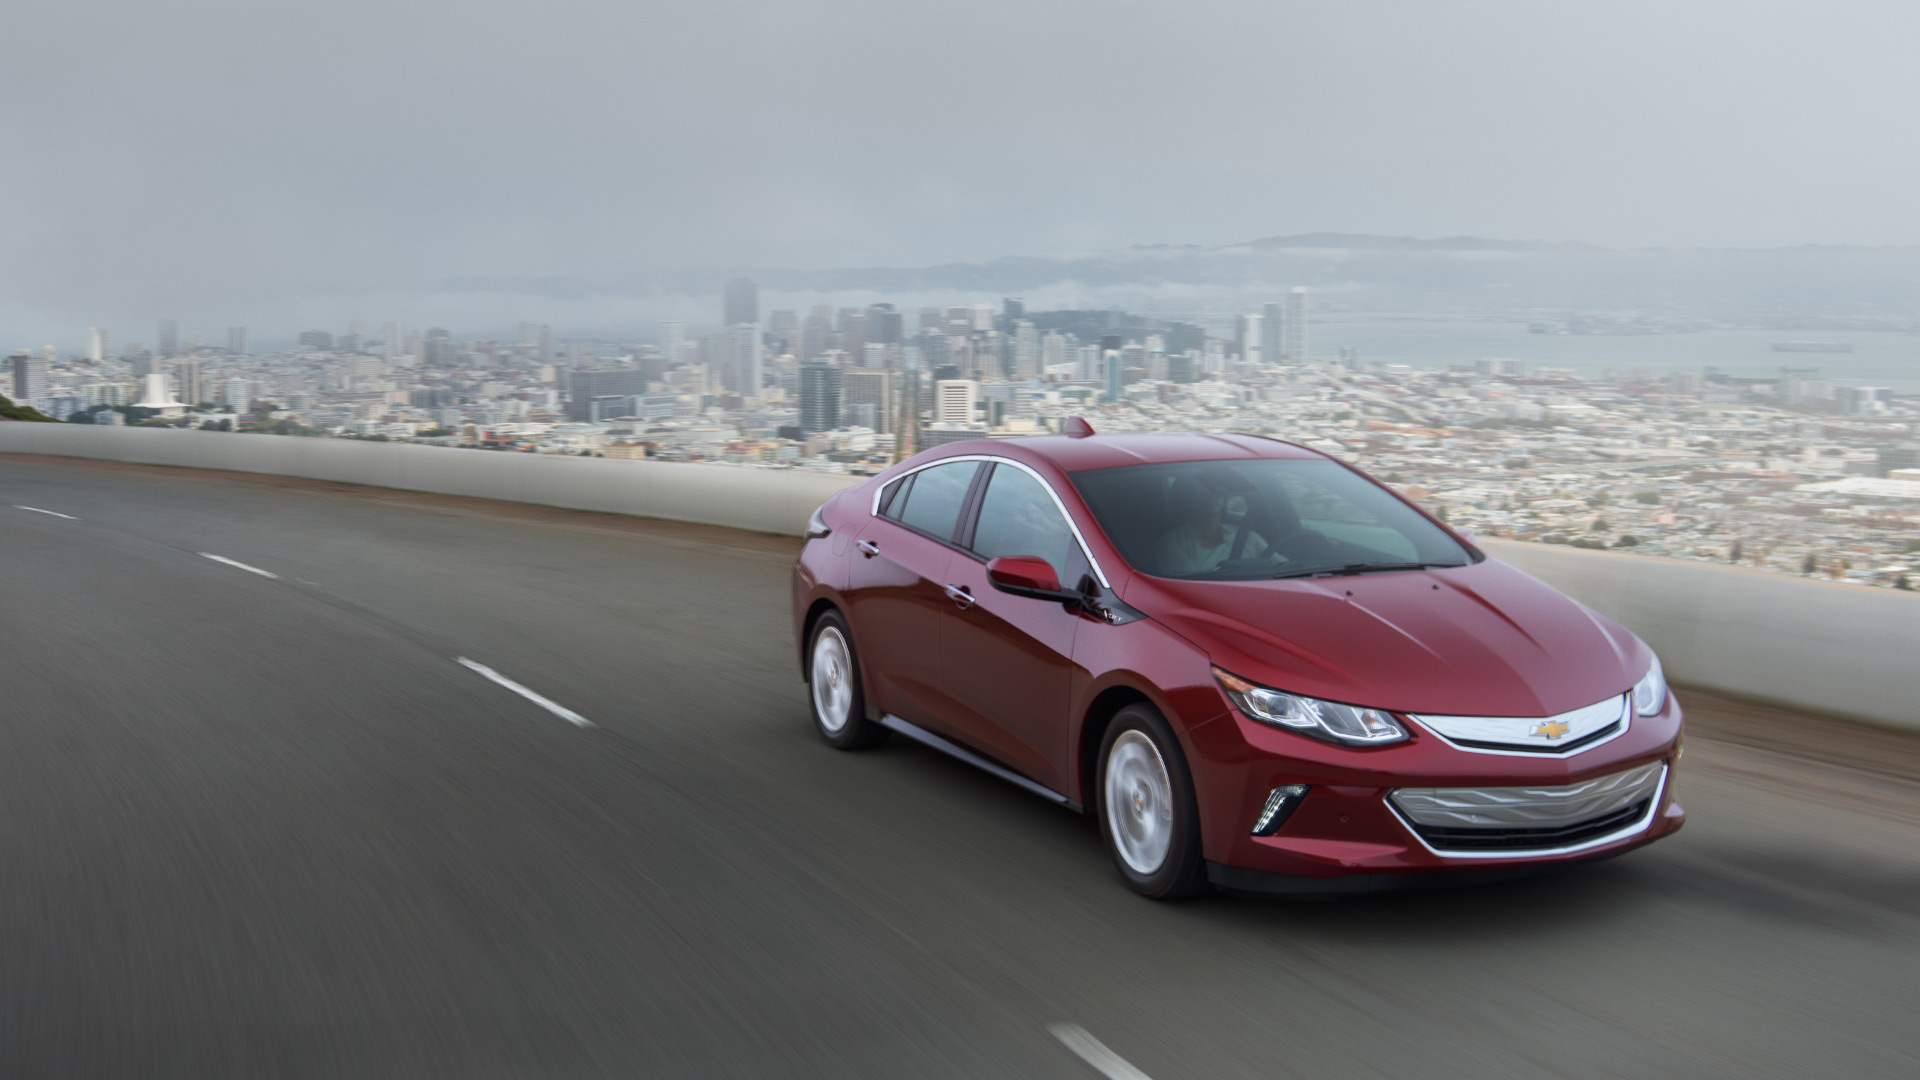 Valley Chevy Chevrolet 2017 Volt Red On Freeway